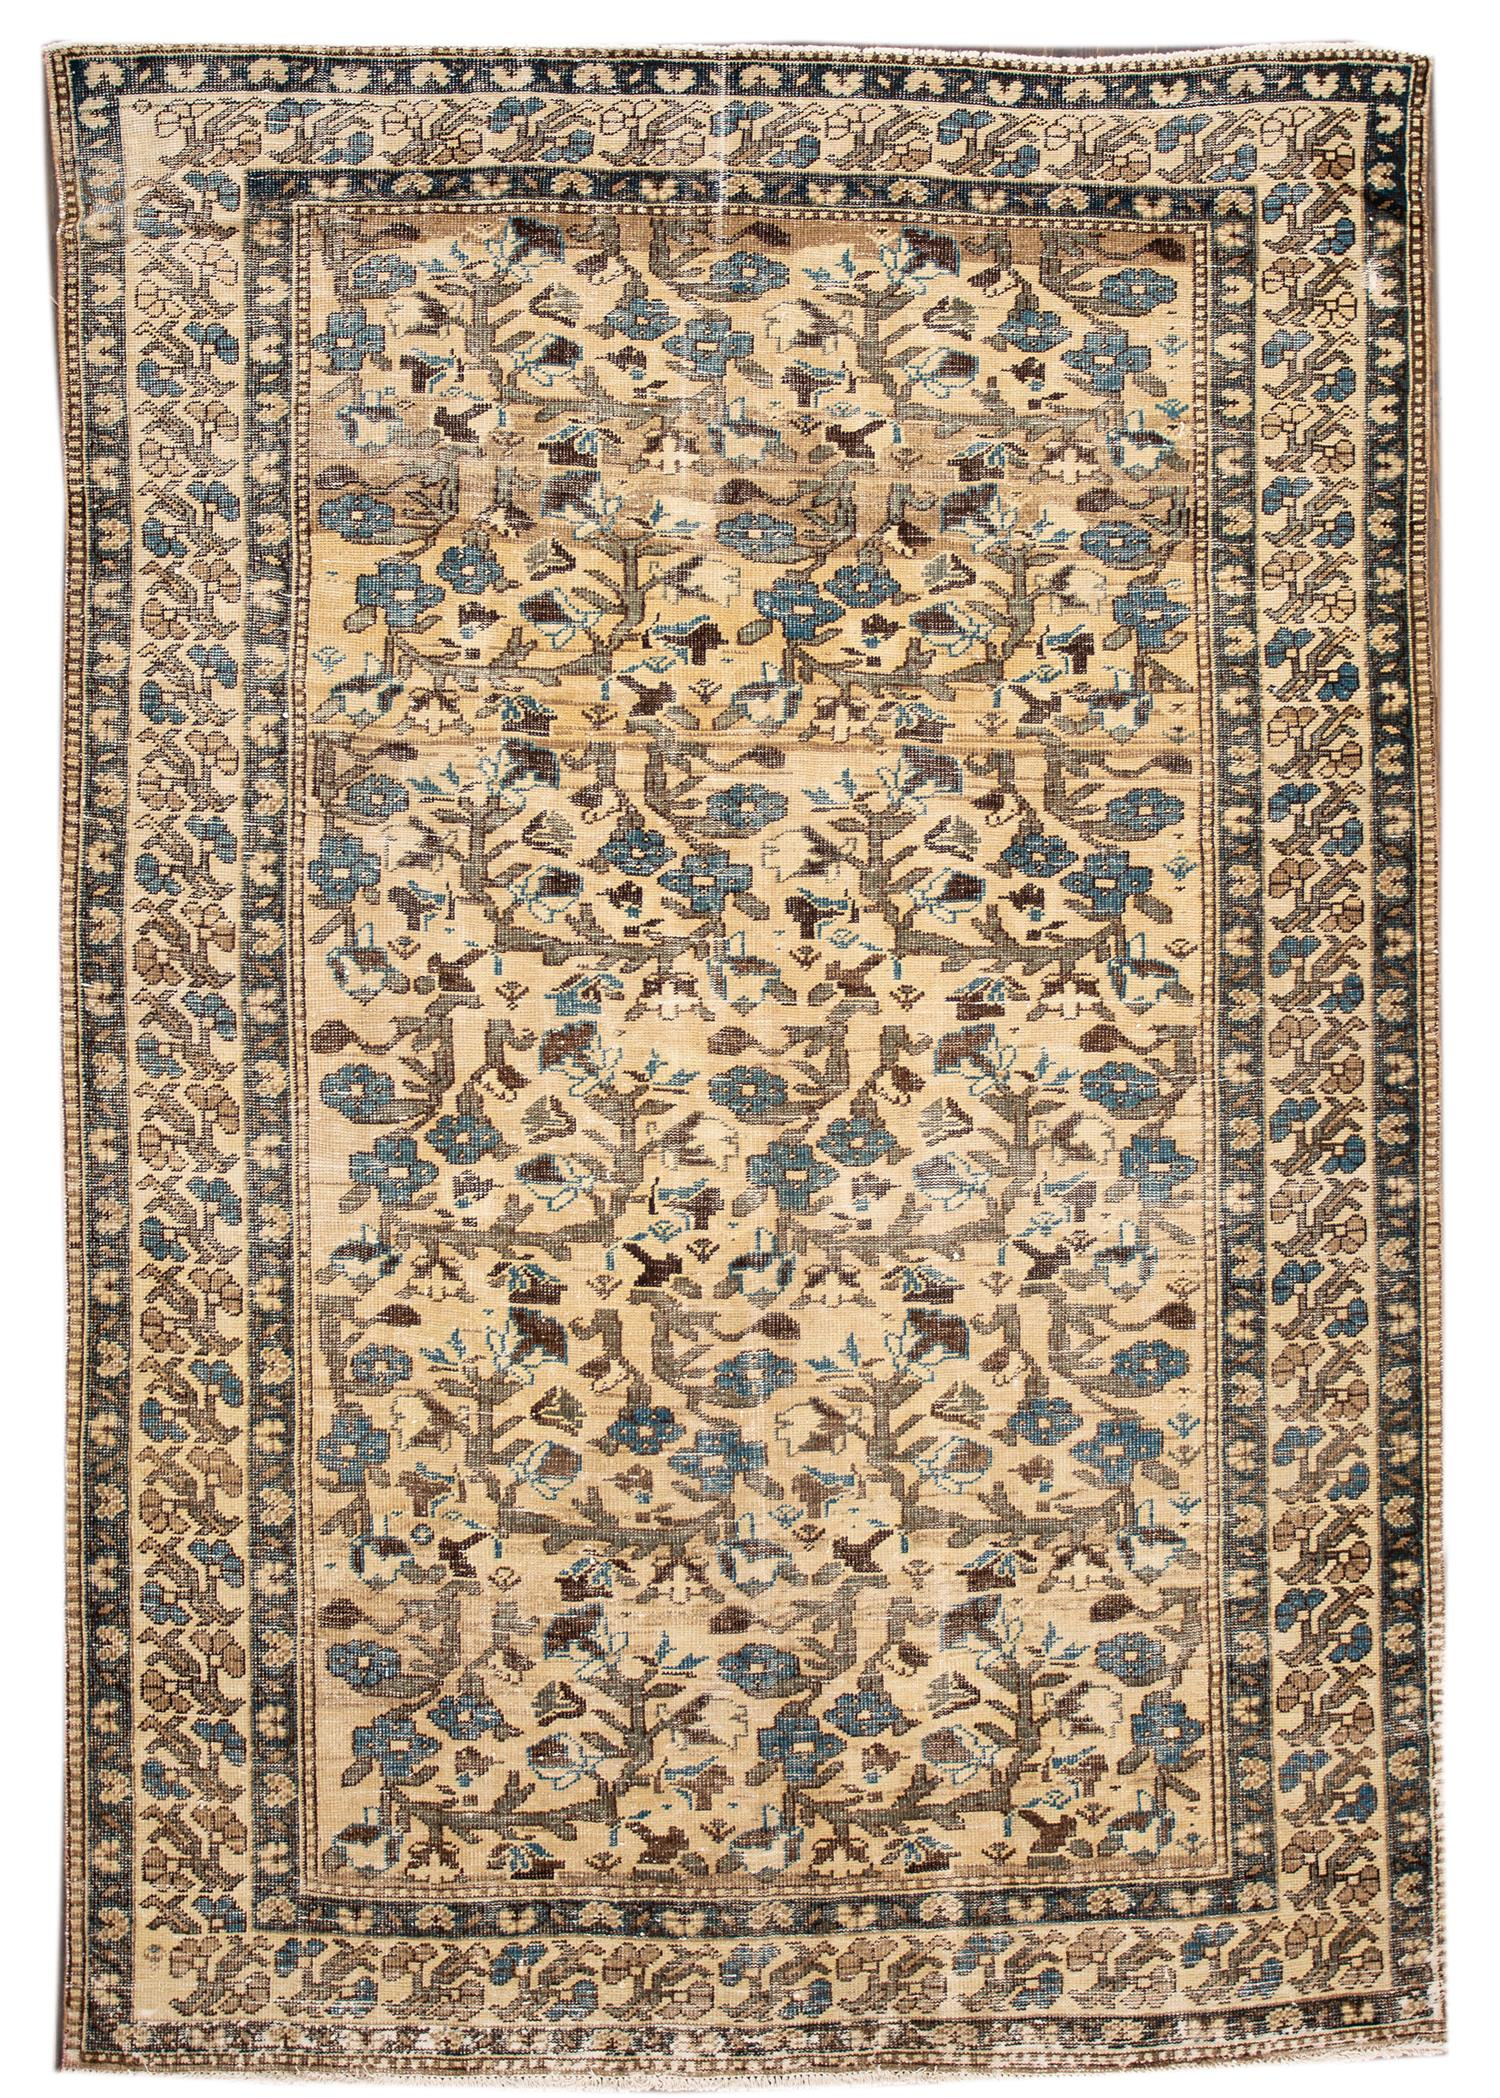 Antique Distressed Tabriz Rug, 7X10